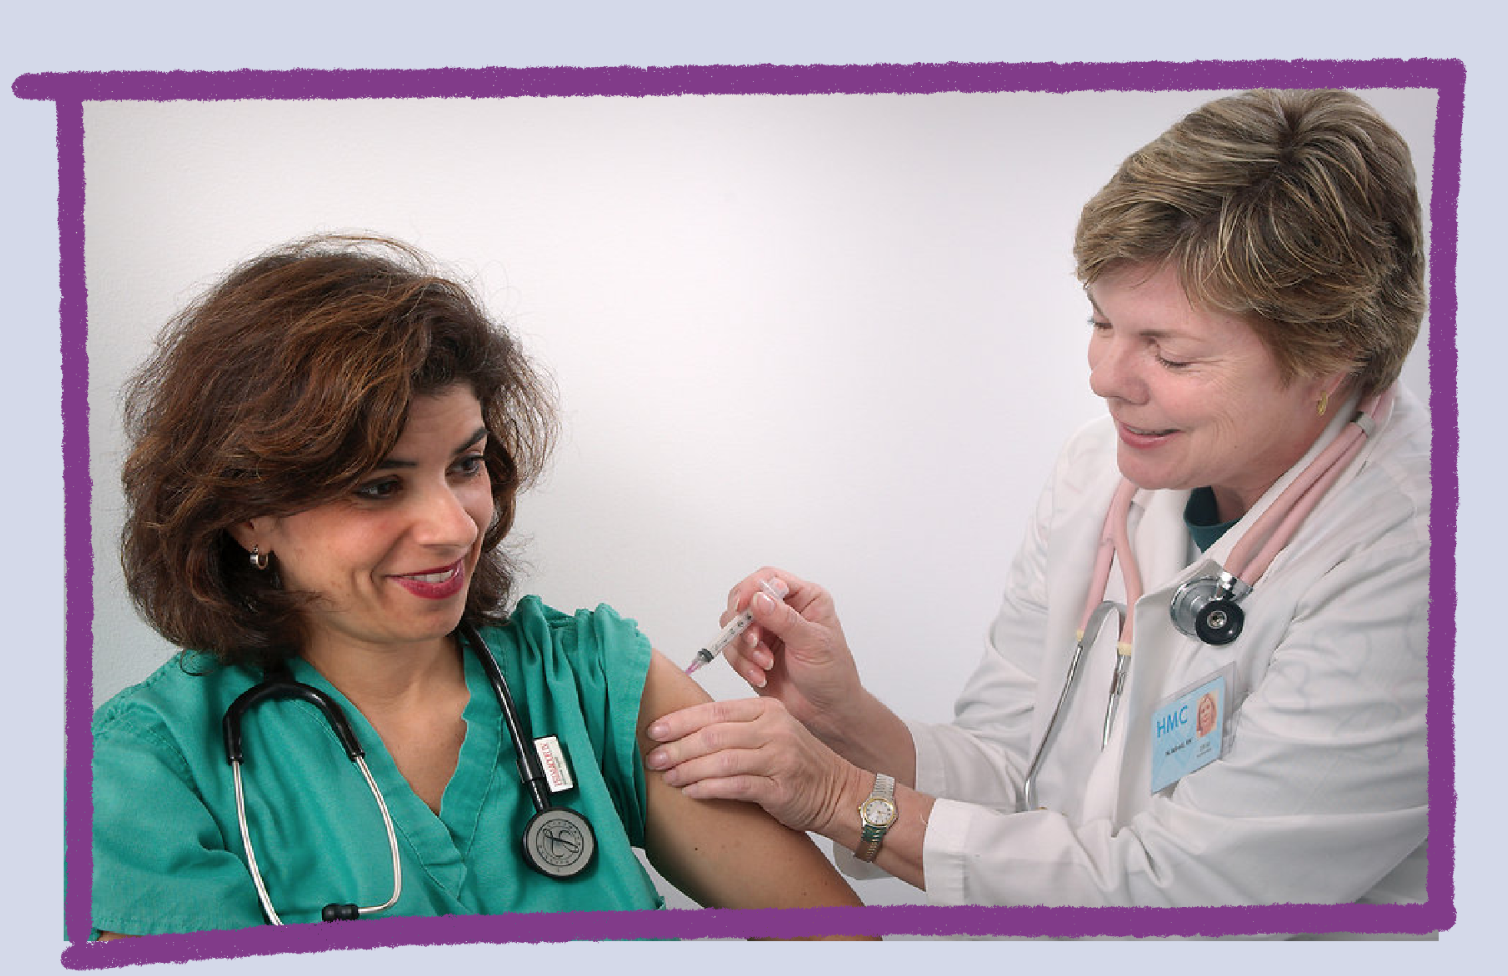 Photo of a doctor giving an injection to a nurse.